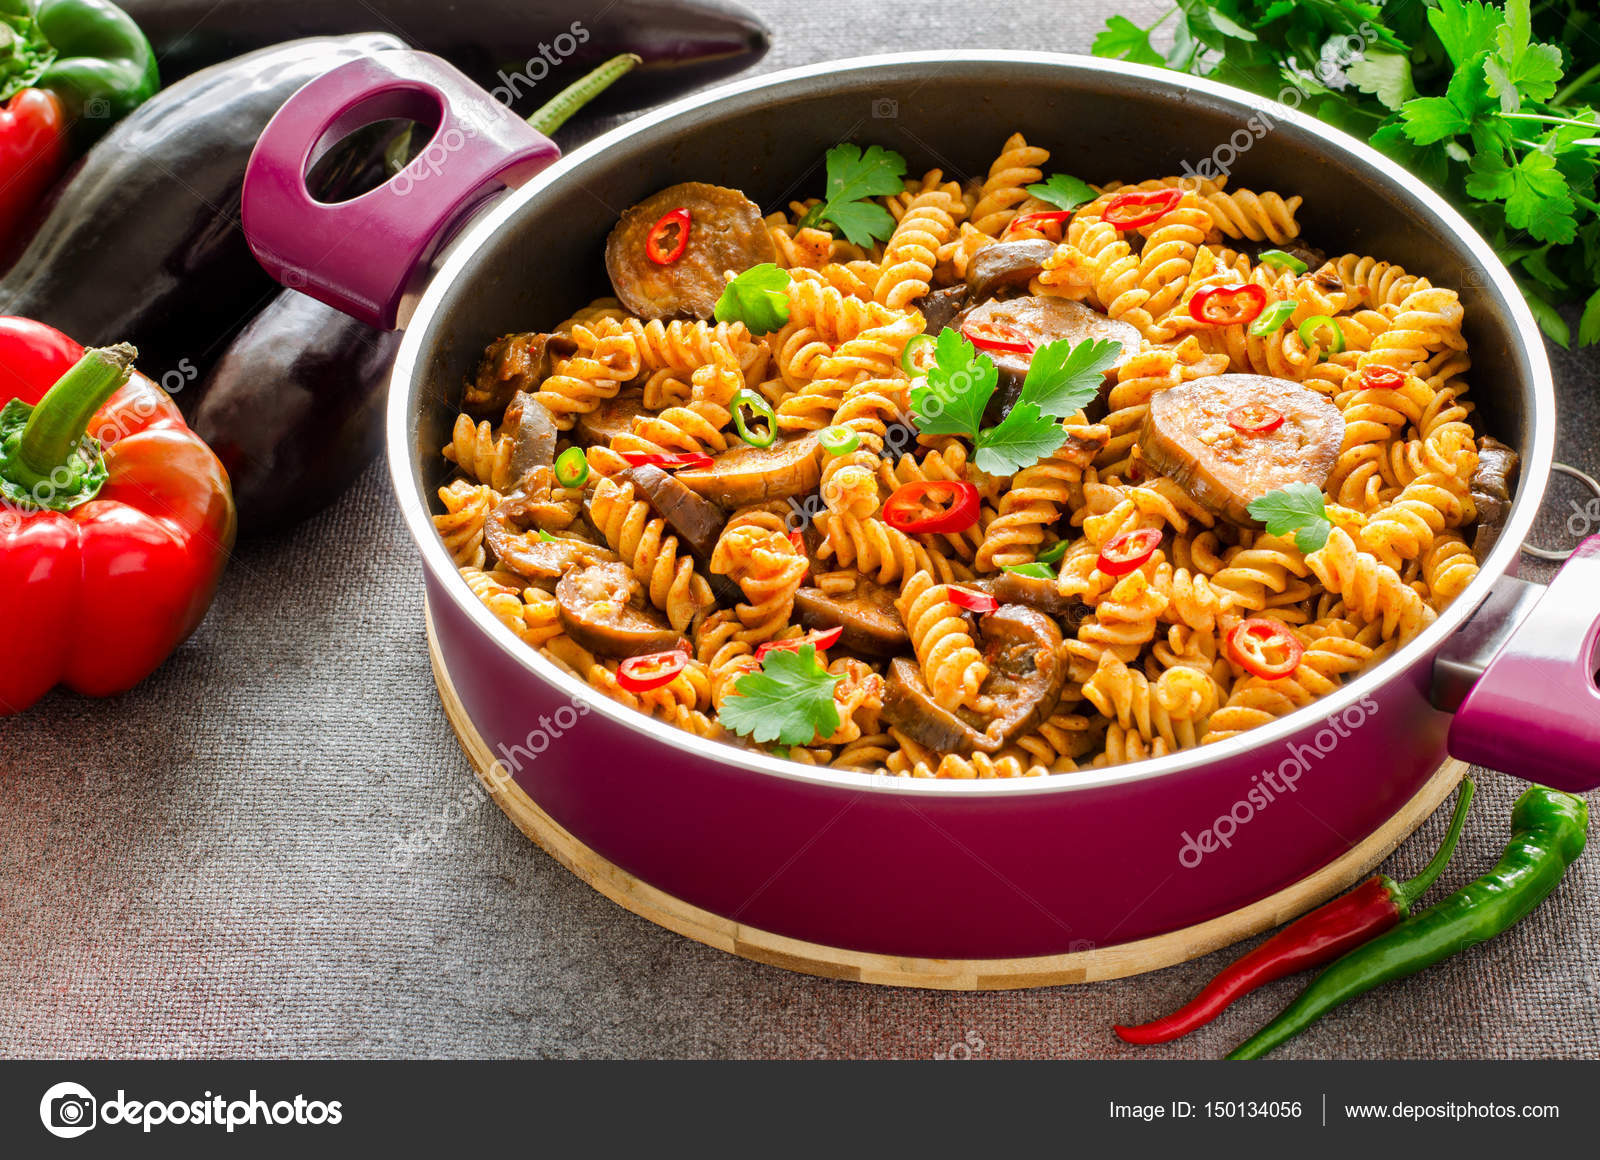 Superior Mediterranean Eggplant Pasta In Pot With Tomatoes, Red Pepper And Parsley  On Grey Background.